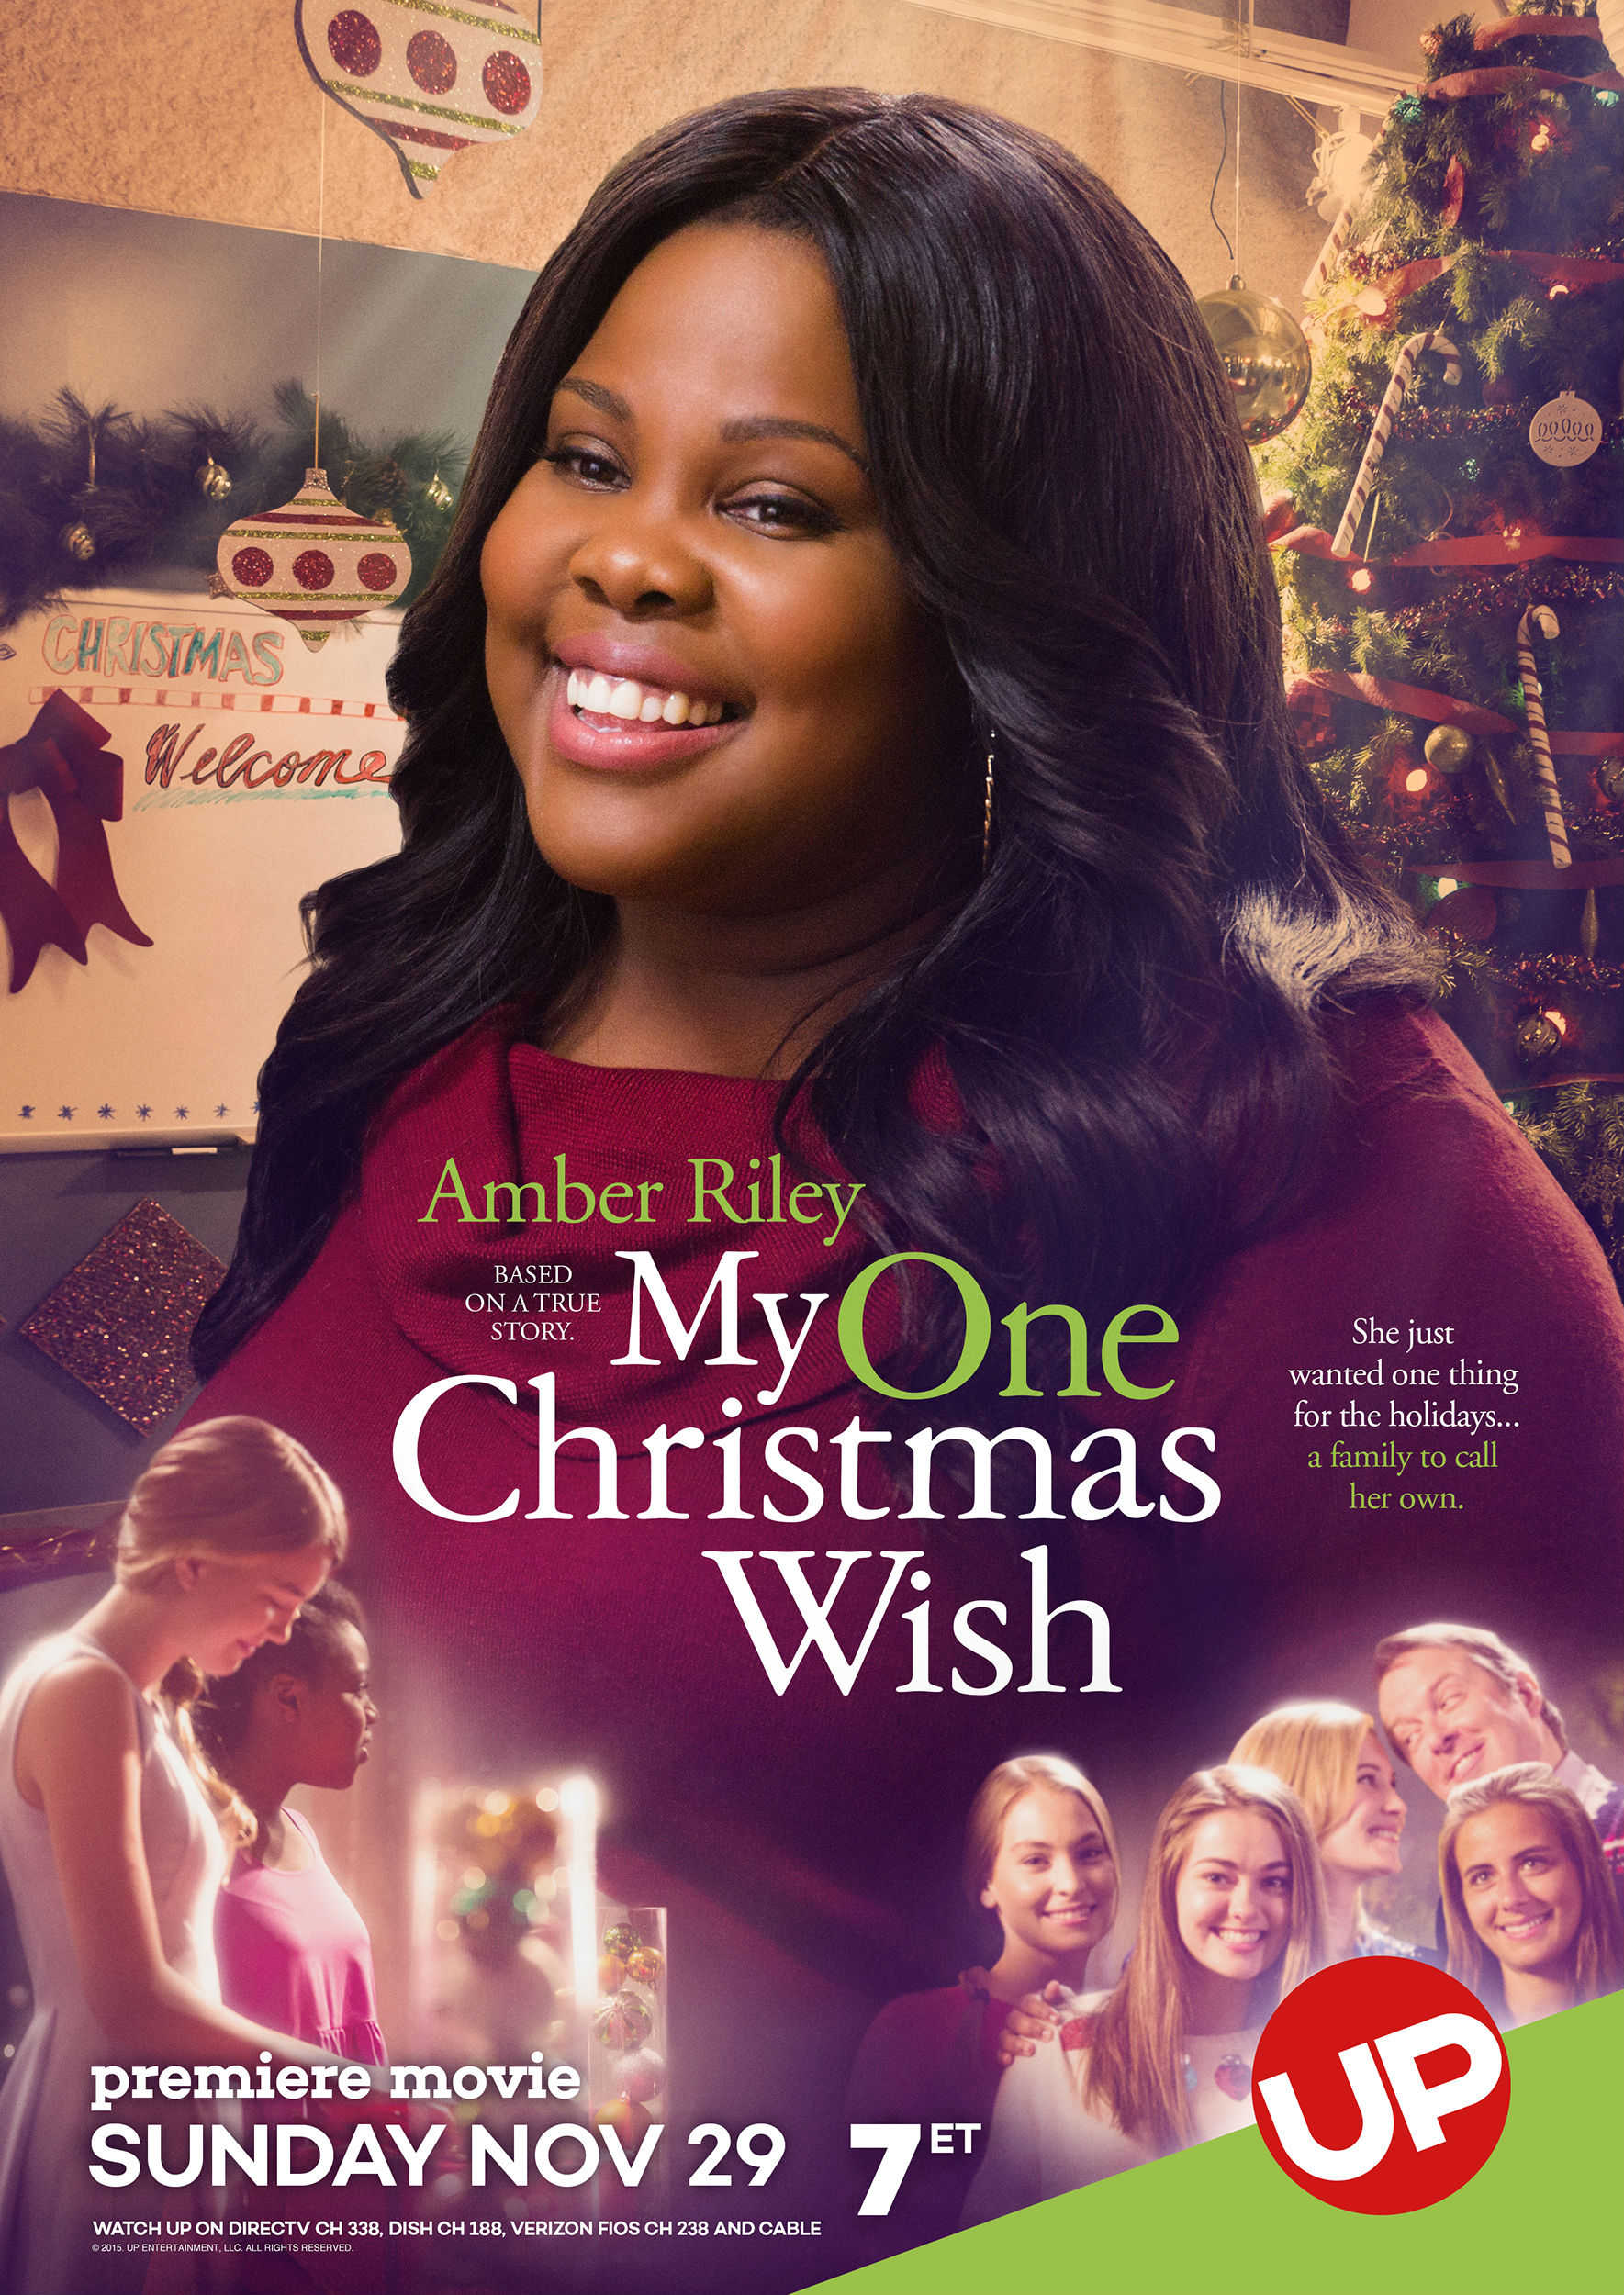 UP's My One Christmas Wish, Starring Amber Riley, Airs Nov. 29 ...